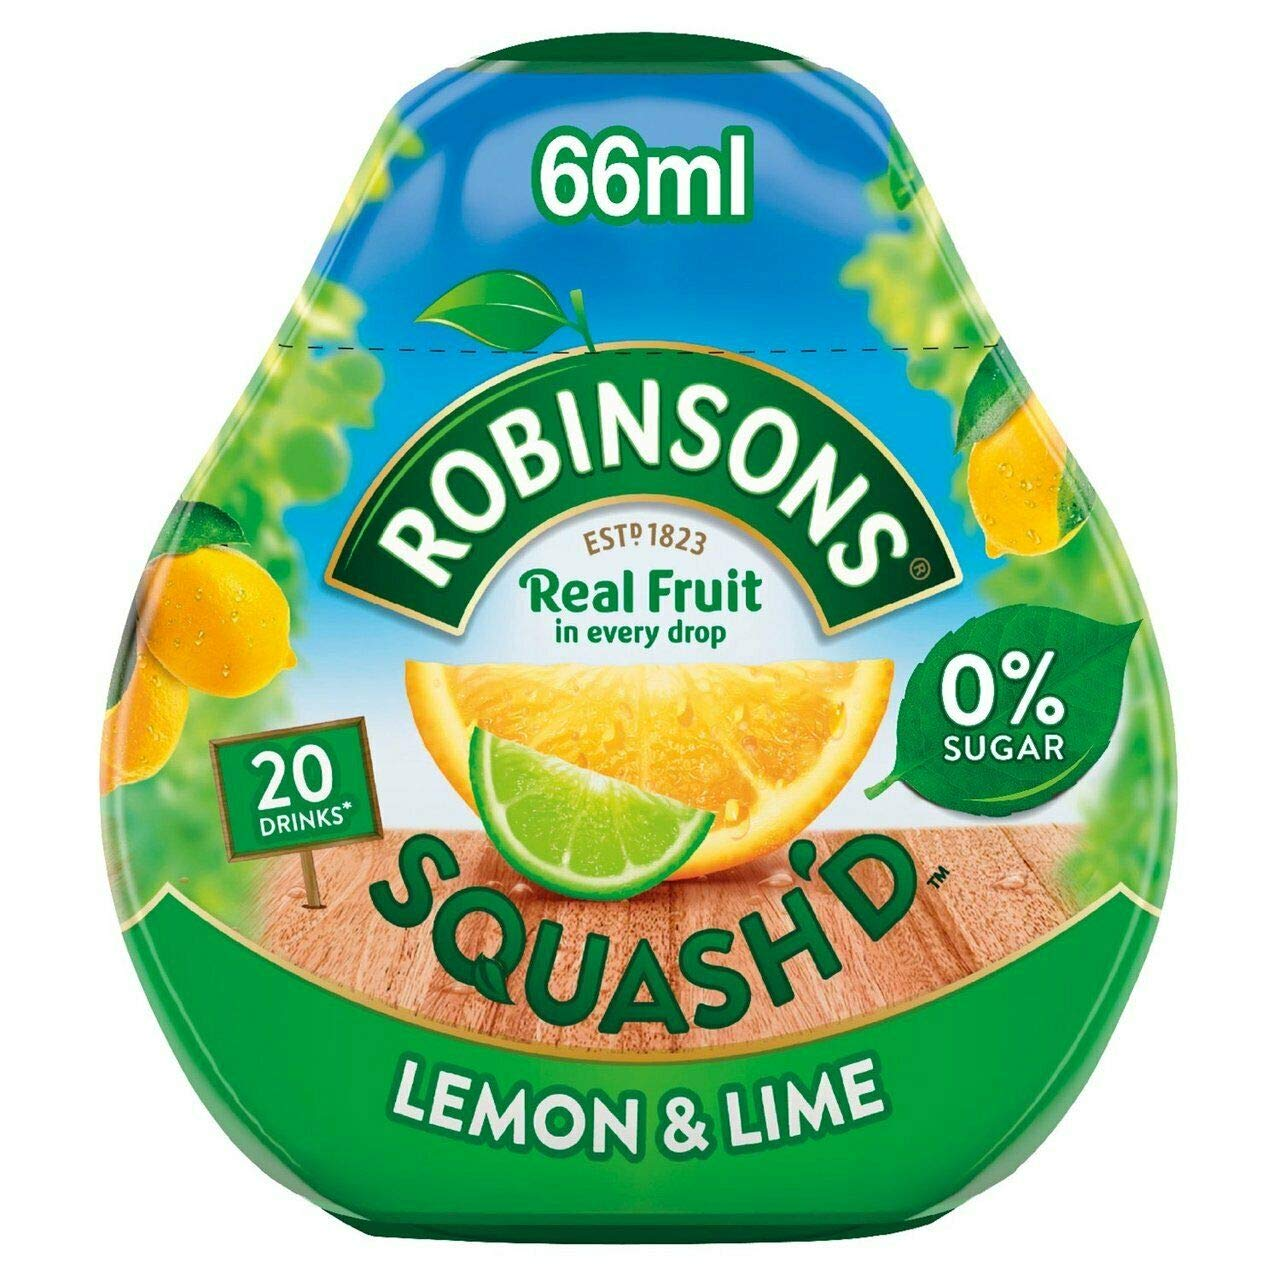 Robinsons Squash'd Lemon & Lime No Added Sugar 66ml (Pack of 2)